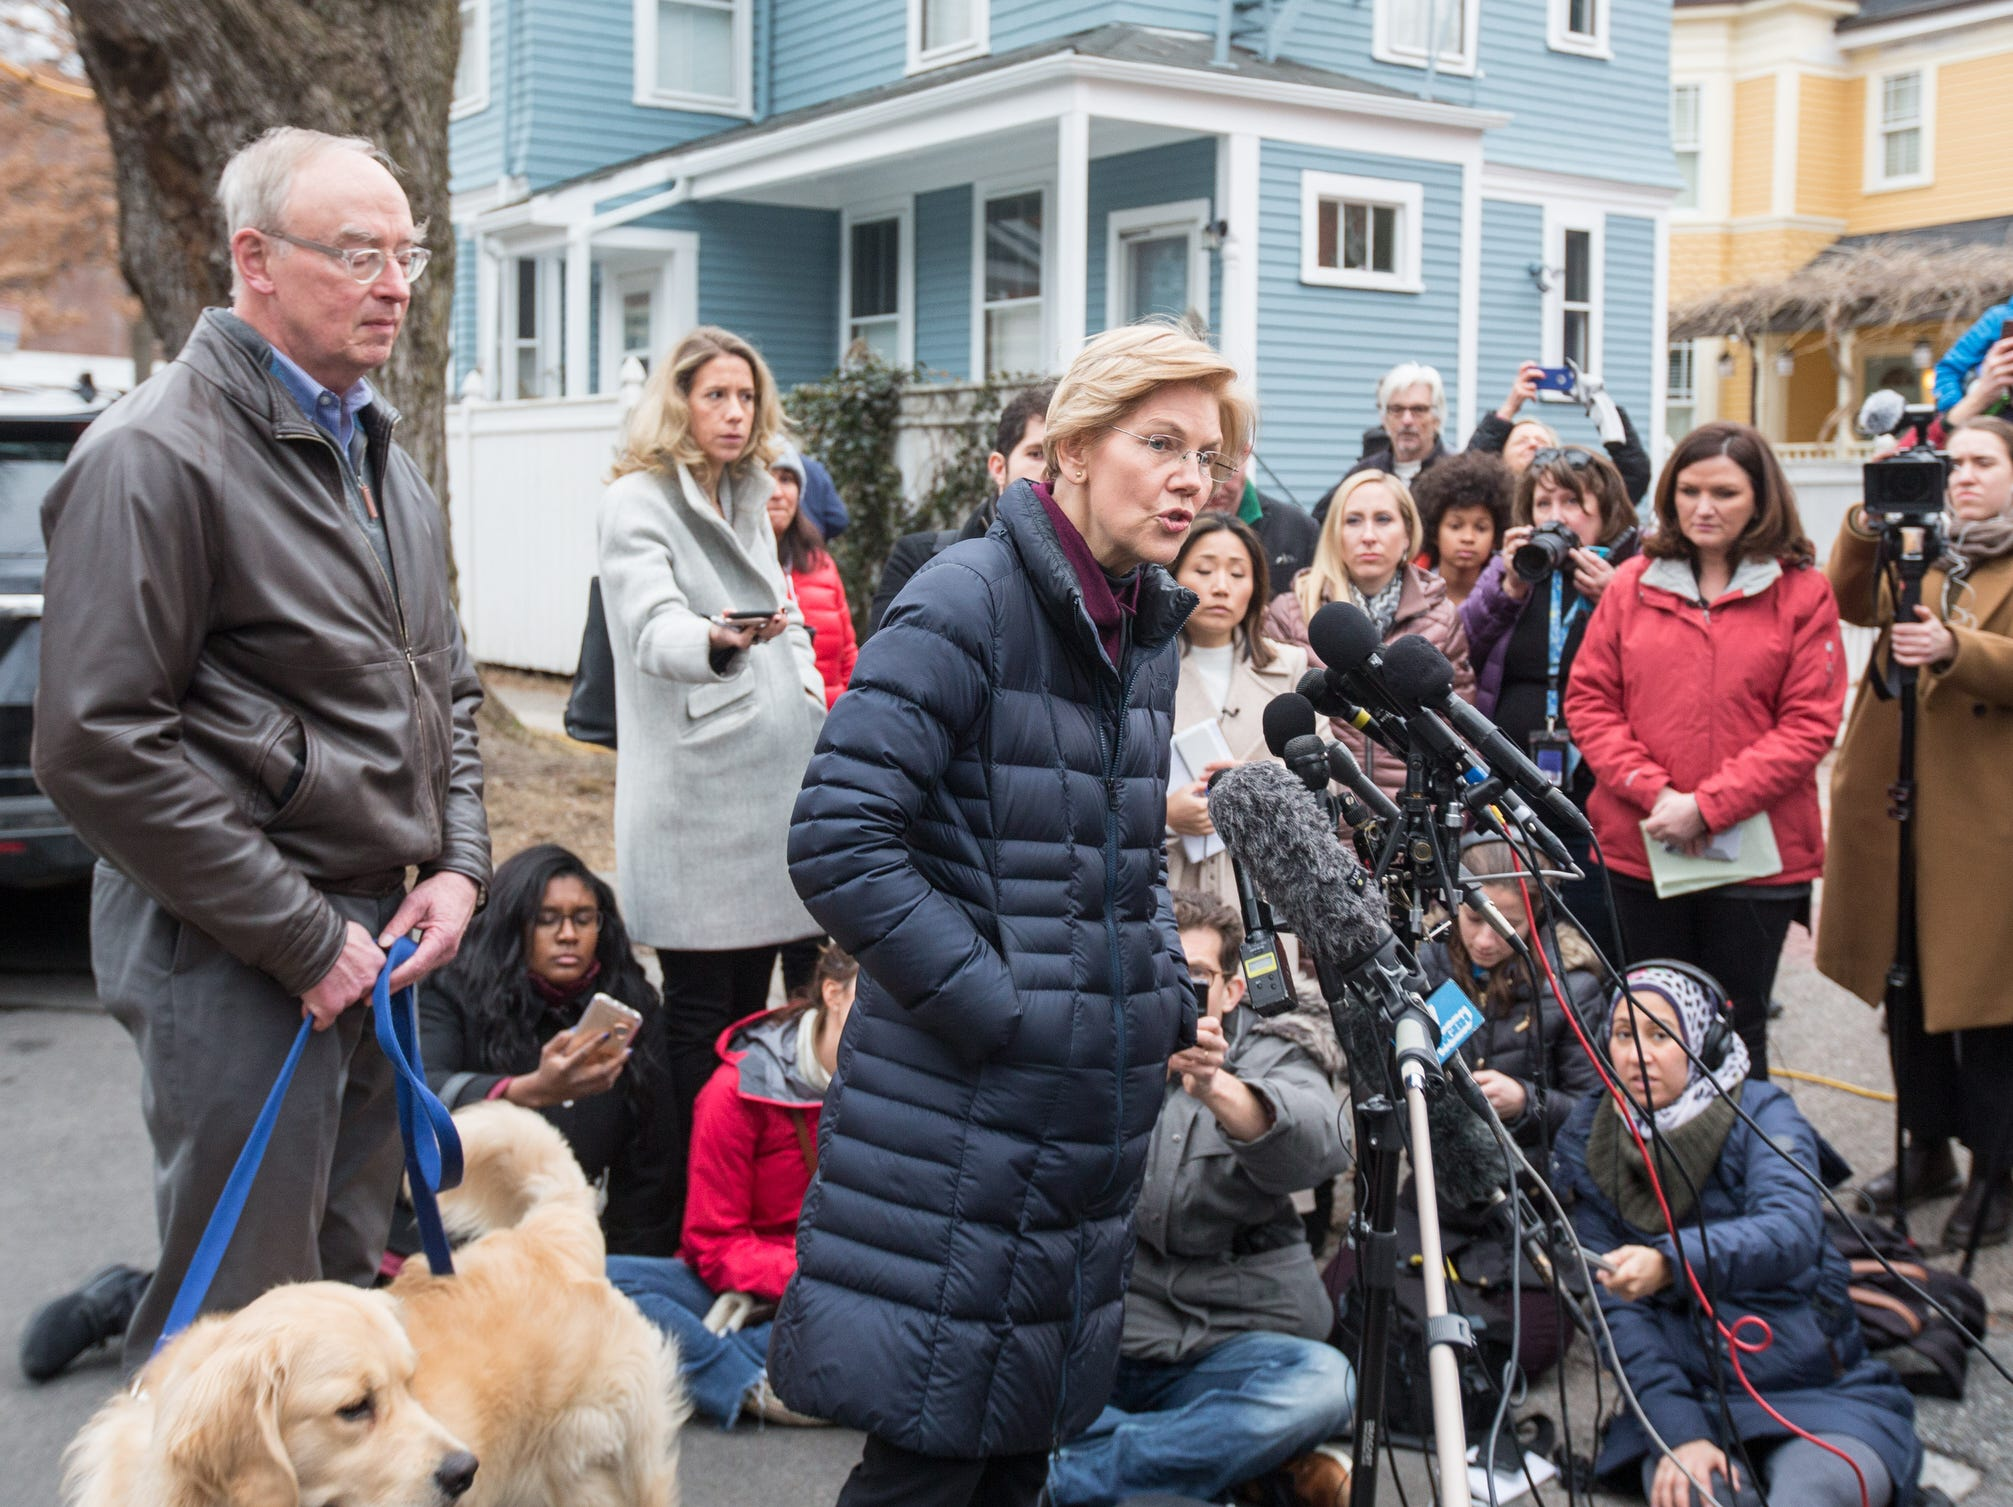 Sen. Elizabeth Warren (D-MA), addresses the media outside of her home in Cambridge, Mass. She is one of the earliest potential candidates to make an official announcement in what is expected to be a very large Democratic field.